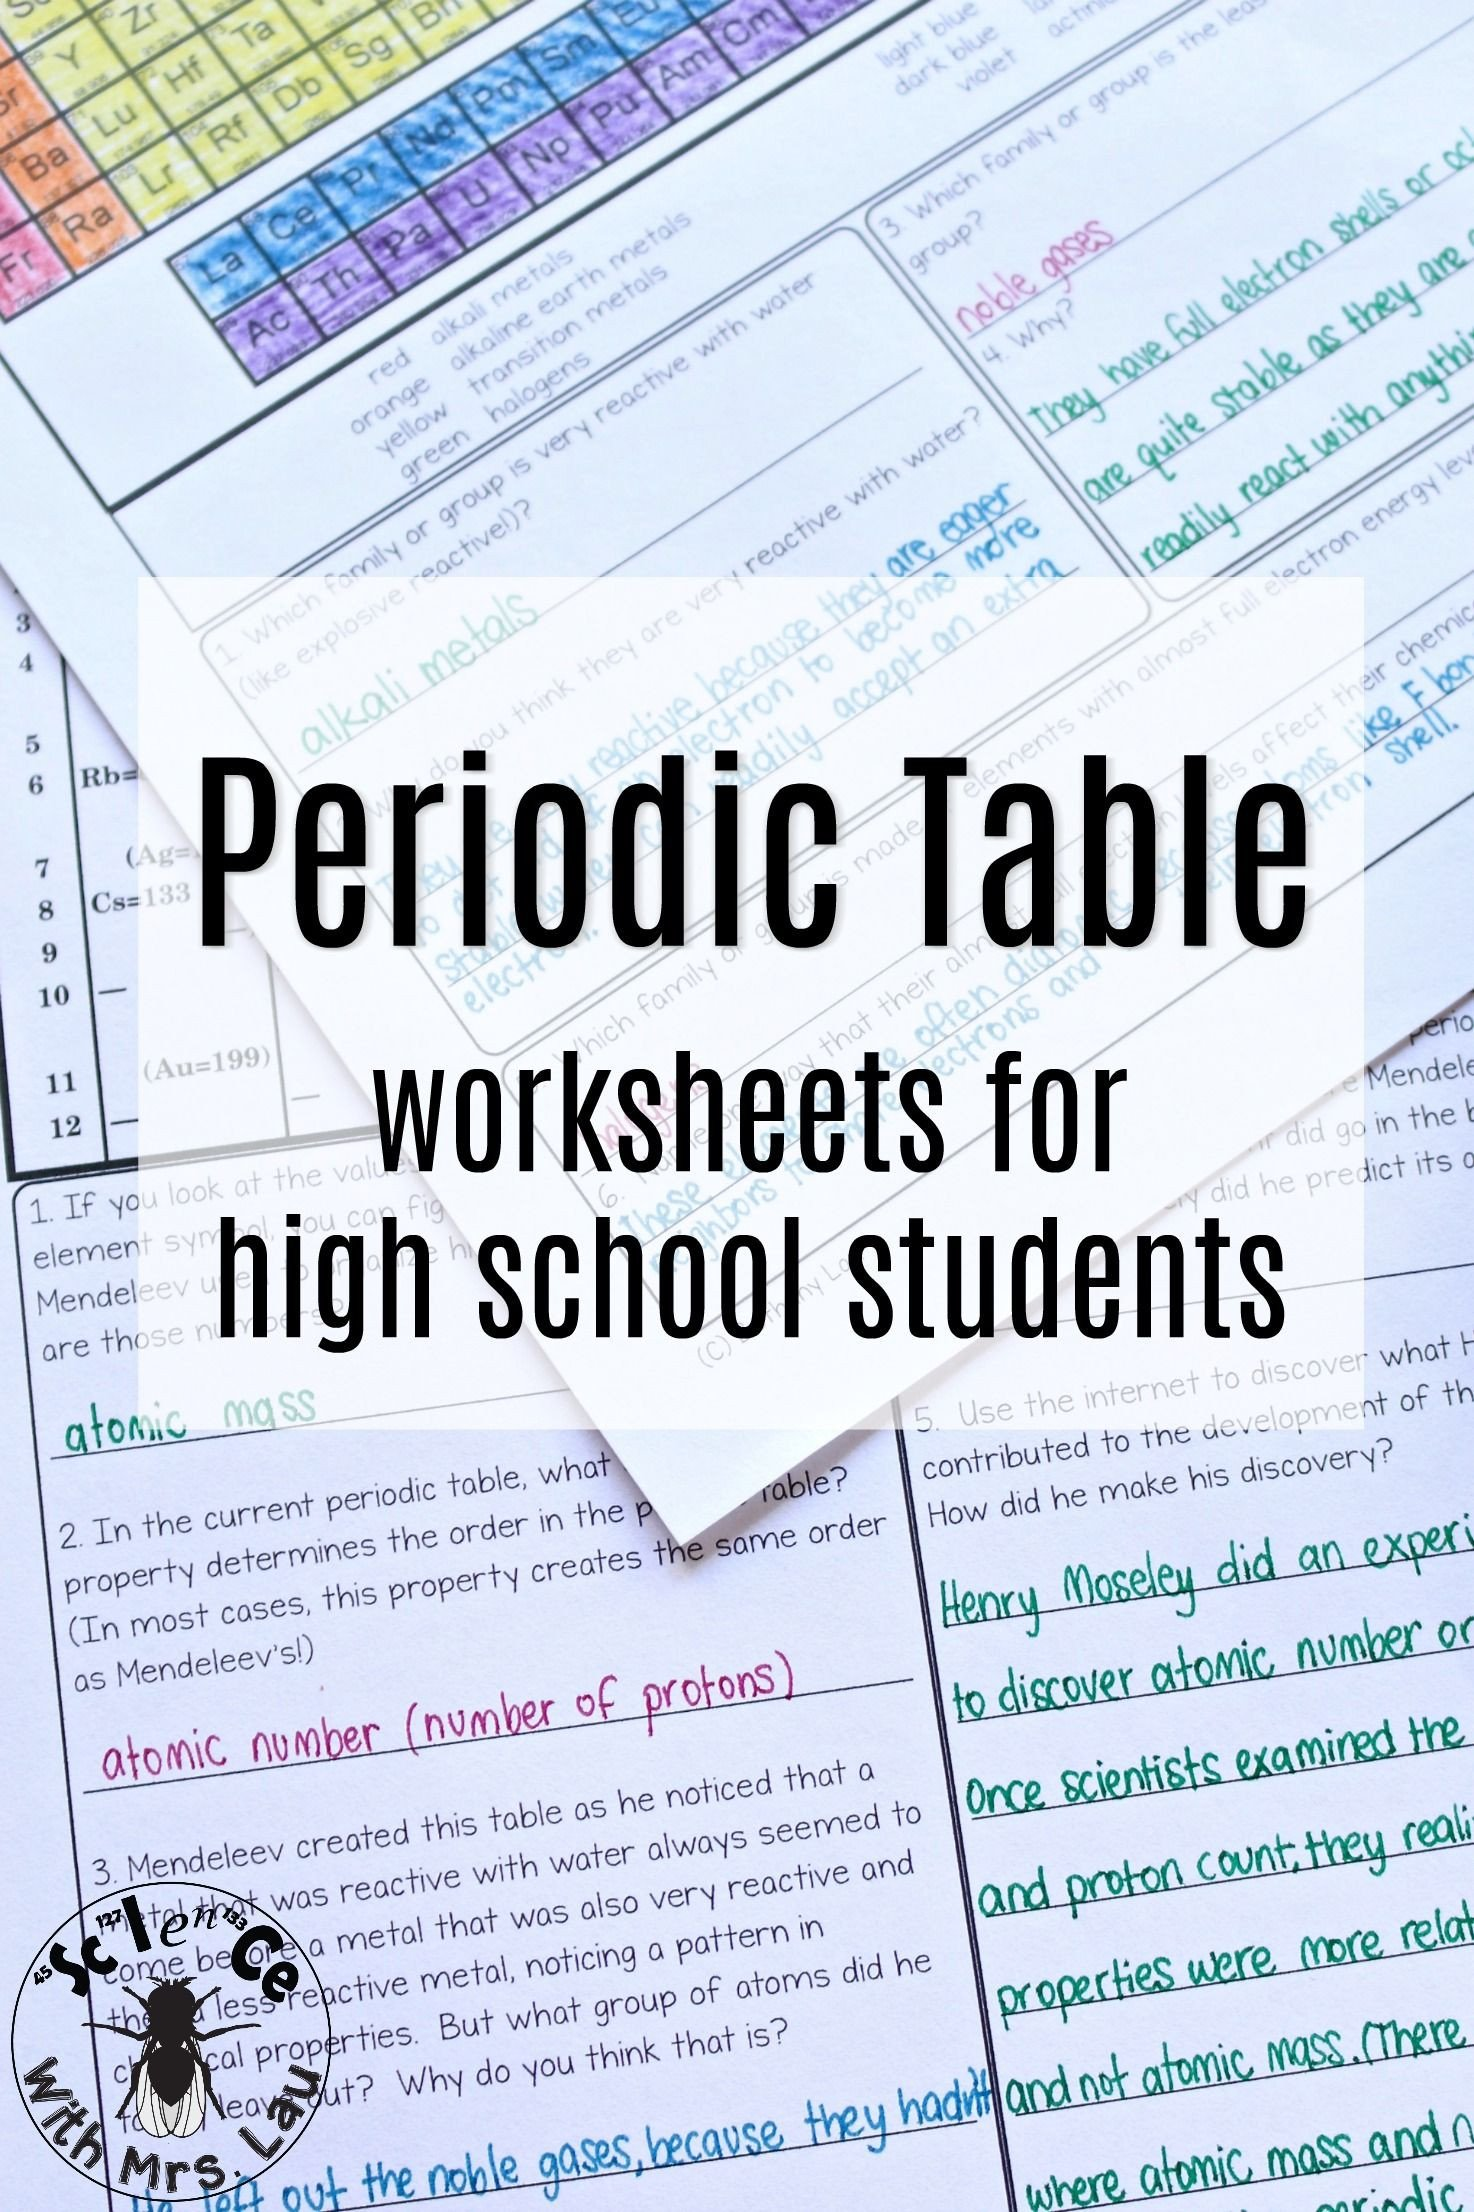 Middle School Periodic Table Worksheets A whole Set Of Periodic Table Trends Worksheets Covering